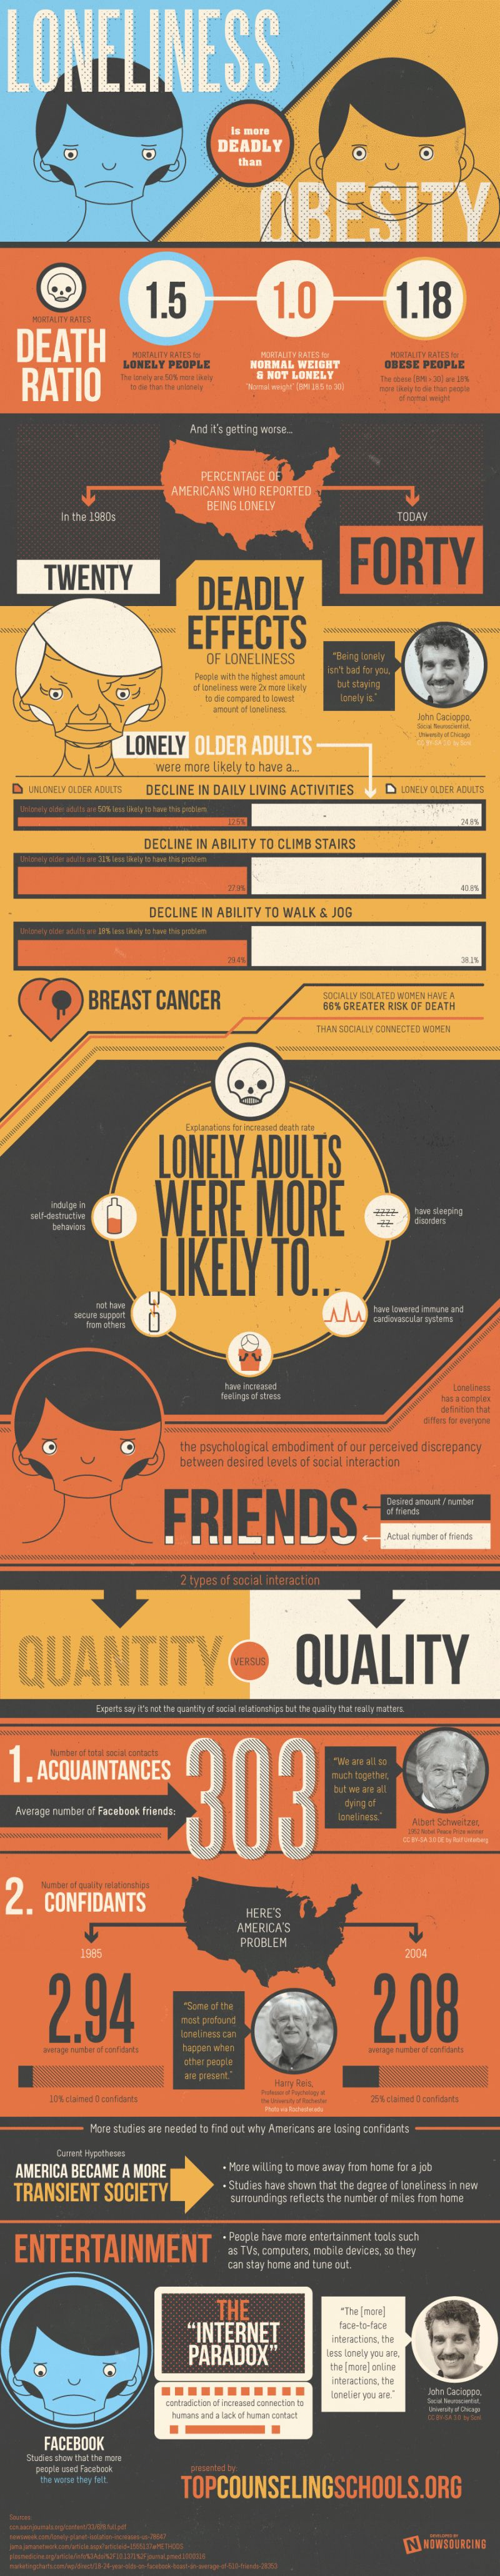 06 loneliness-vs-obesity